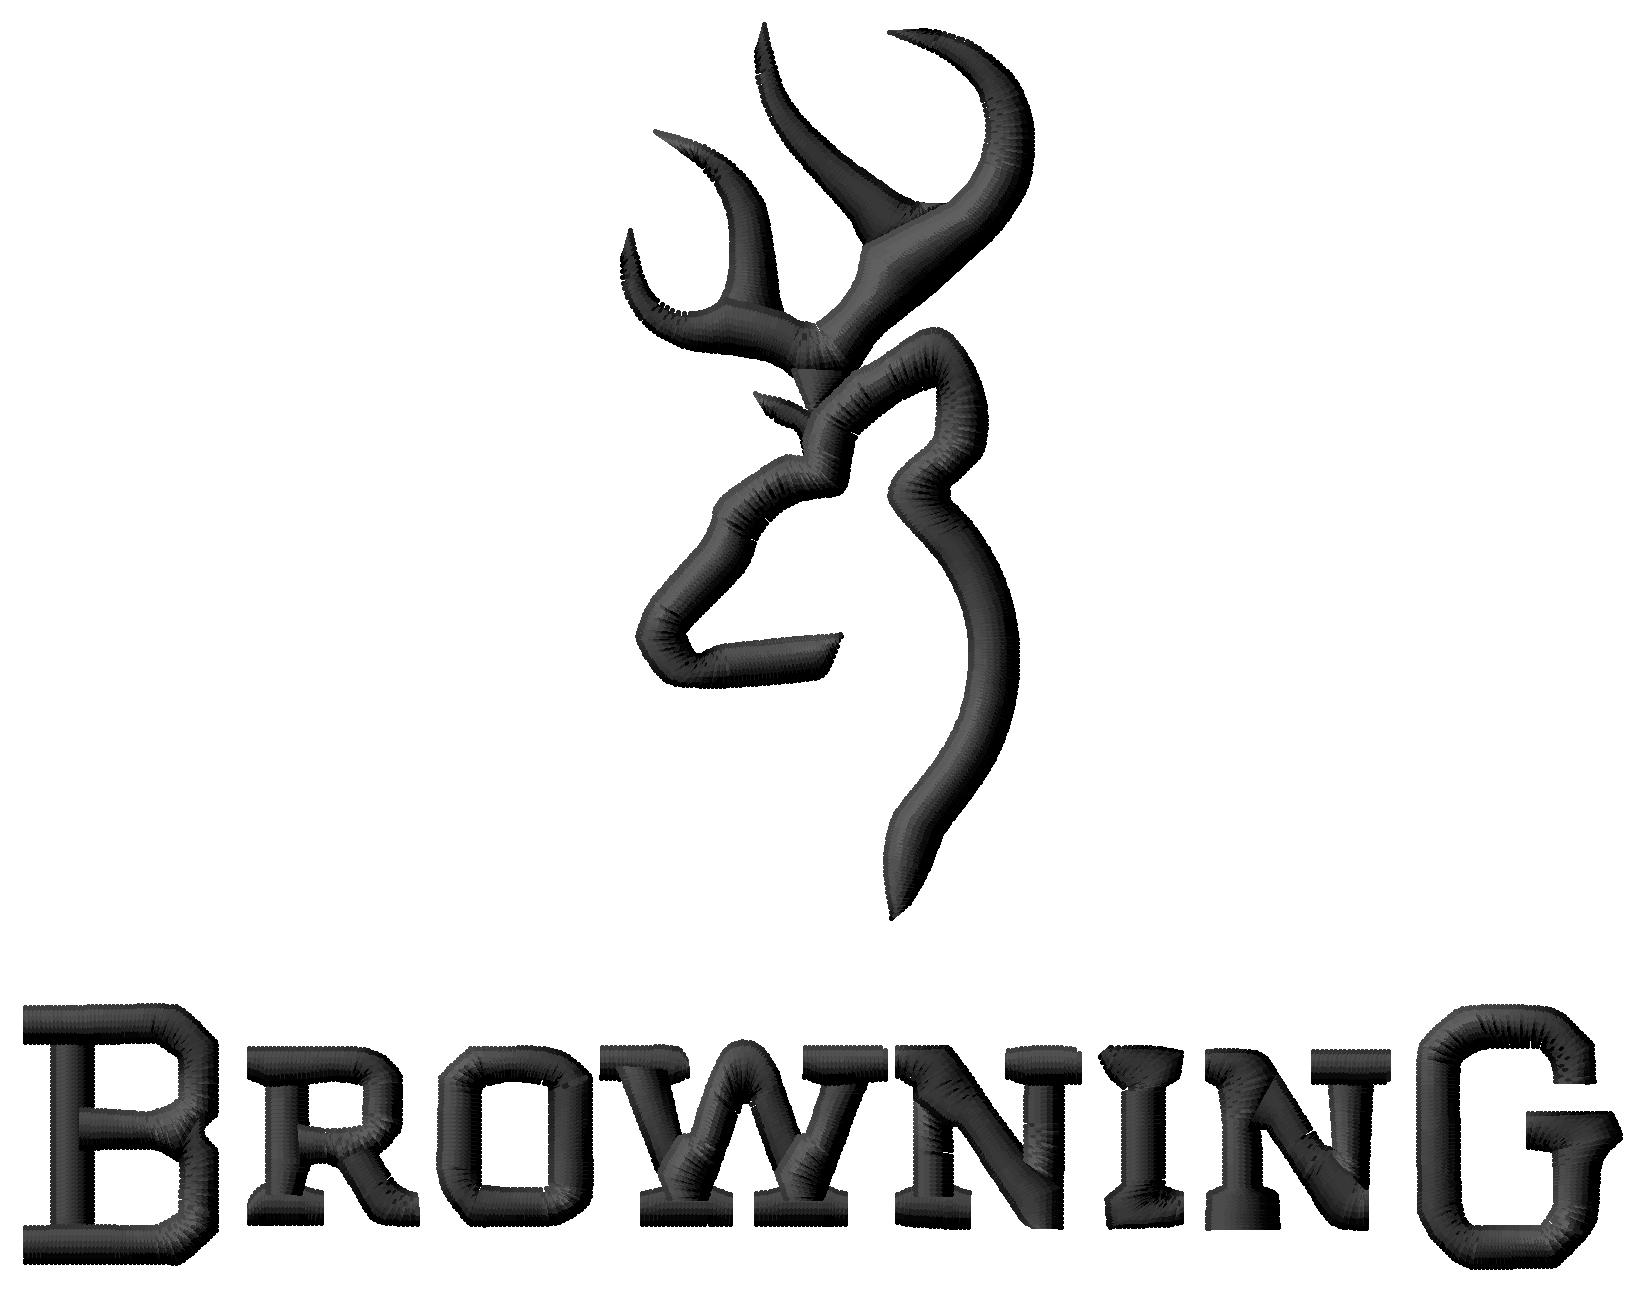 Browning Logo Wallpaper Browning logo embroidery 1645x1293